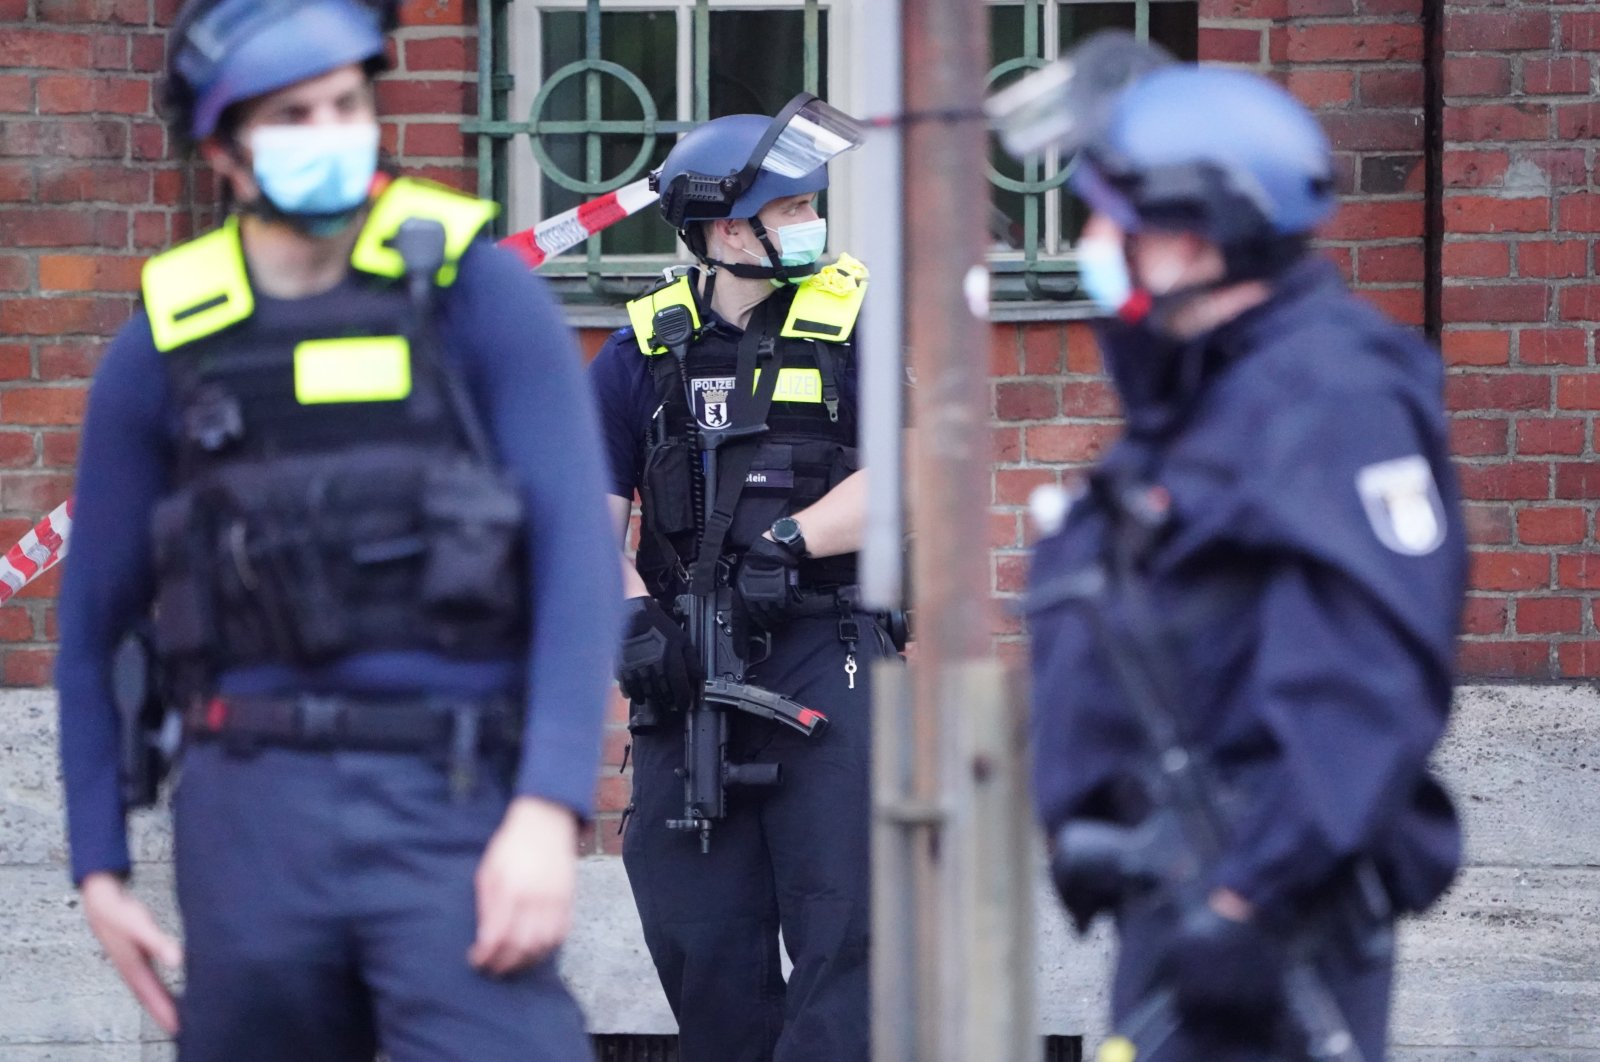 Armed policemen stand in front of the Senate Department for Health, Care and Equality building, in Berlin, Germany, 01 June 2021. (EPA Photo)